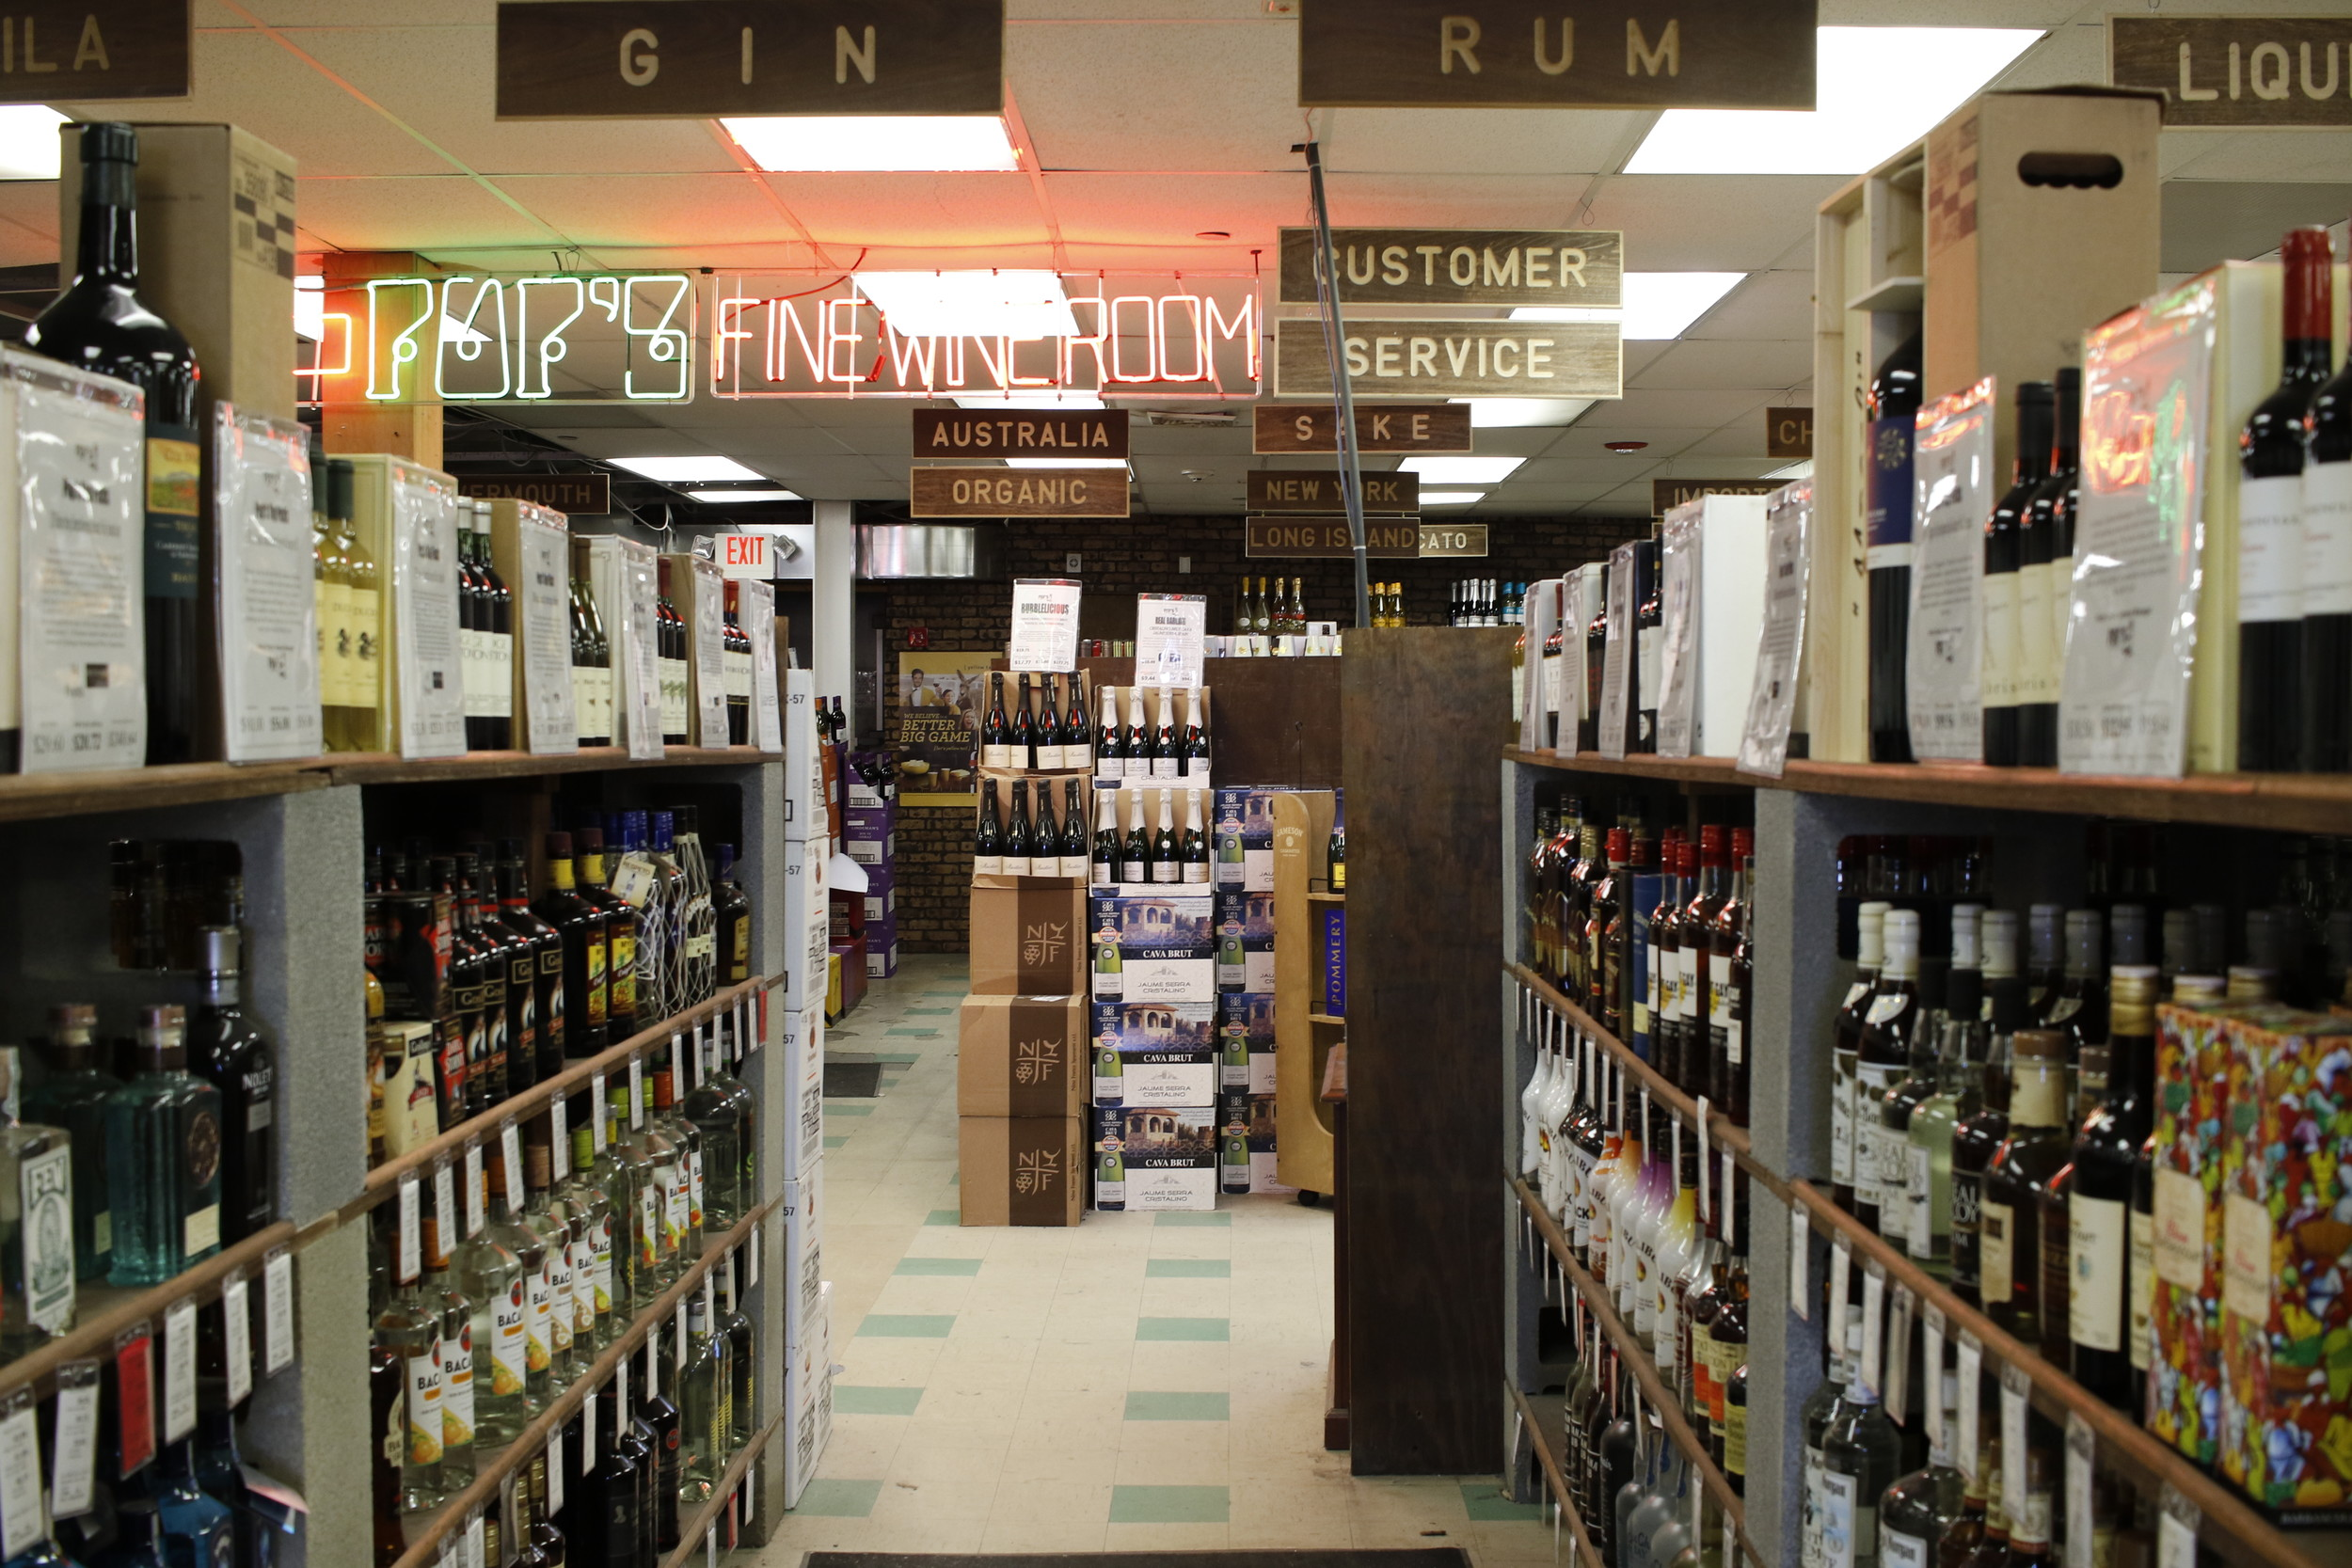 The store has had five expansions during the last 40 years, and opens up into Pop's Fine Wine Room.